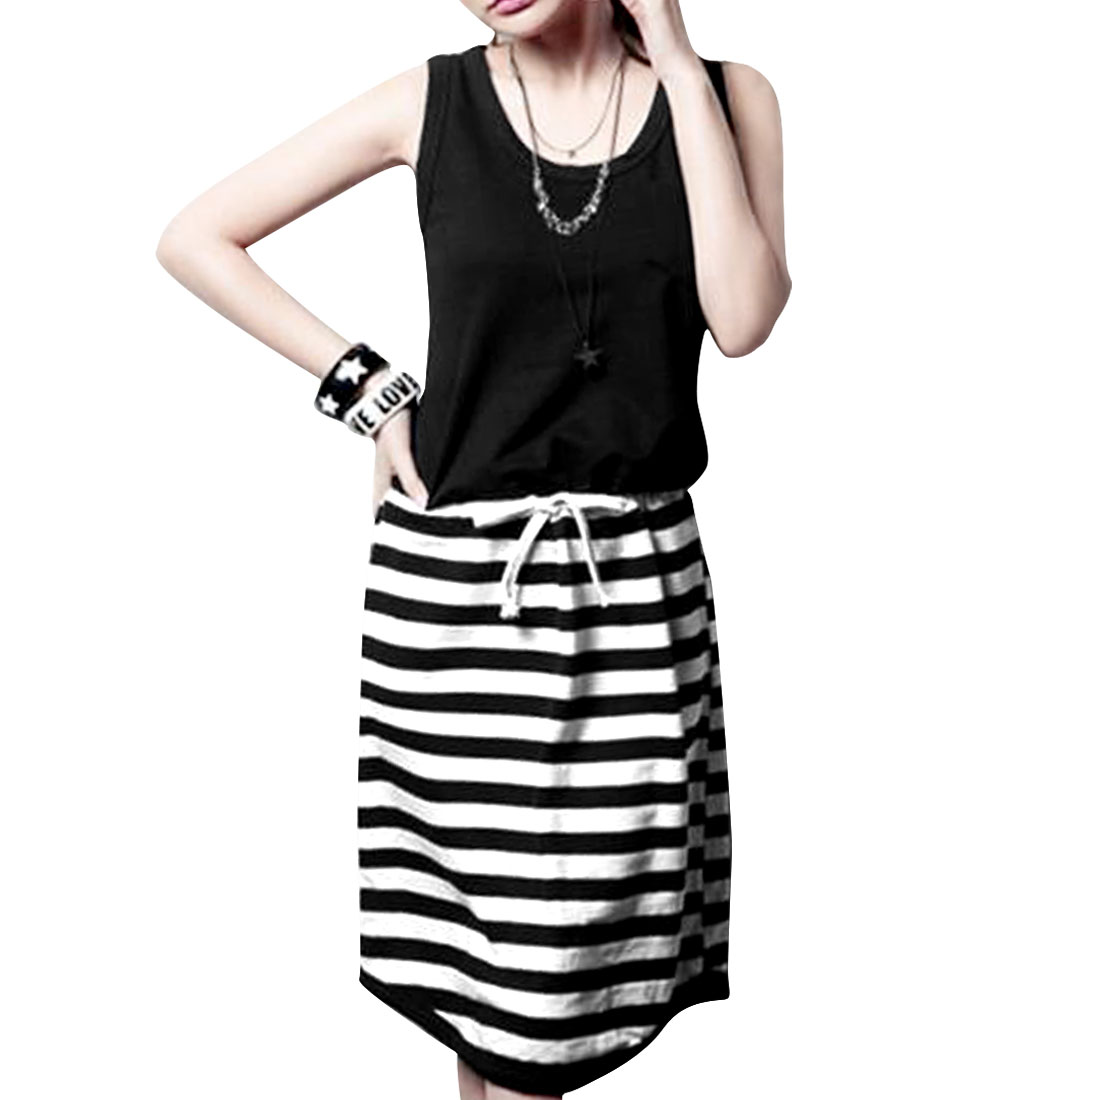 Ladies Horizontal Striped Pocket Round Neck Casual Dress White Black XS